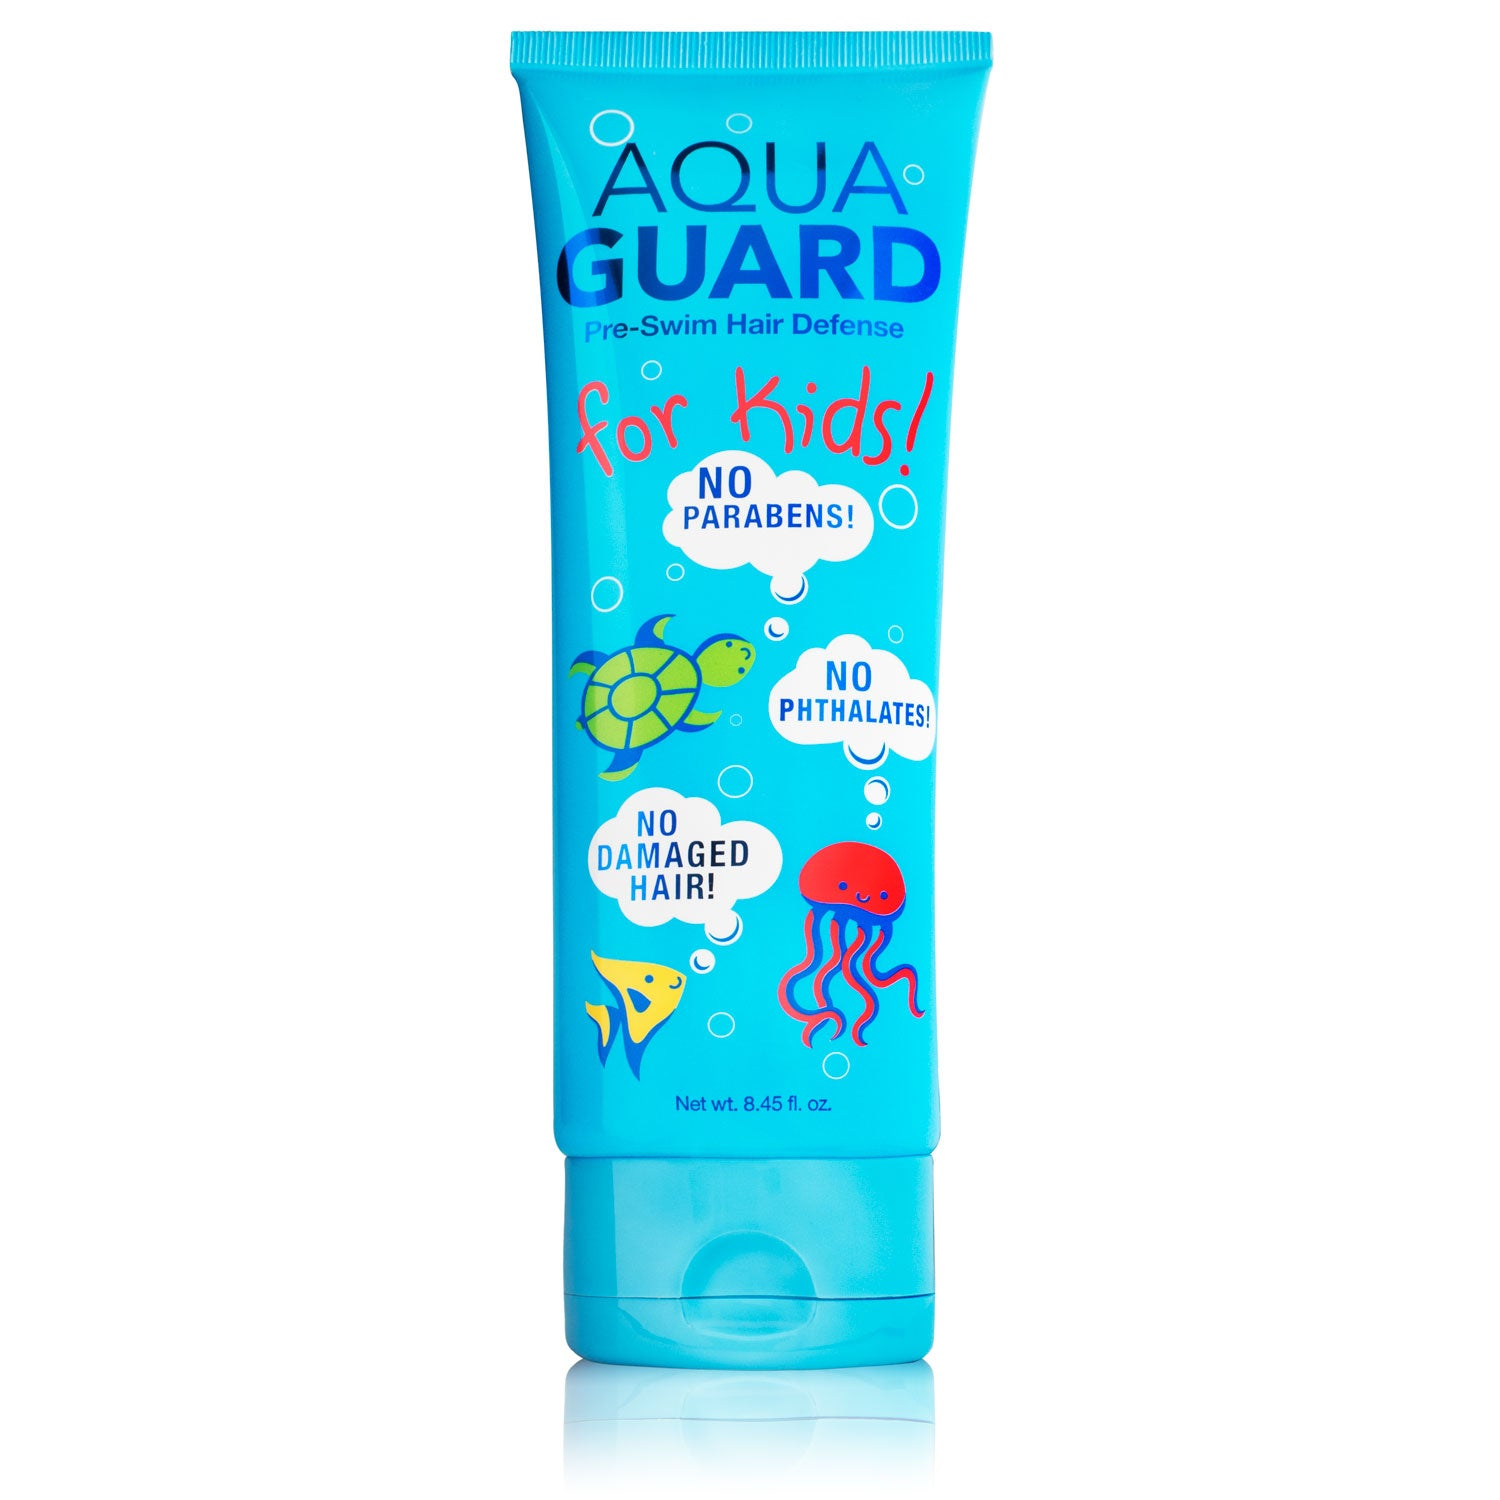 AquaGuard Pre-Swim Hair Defense